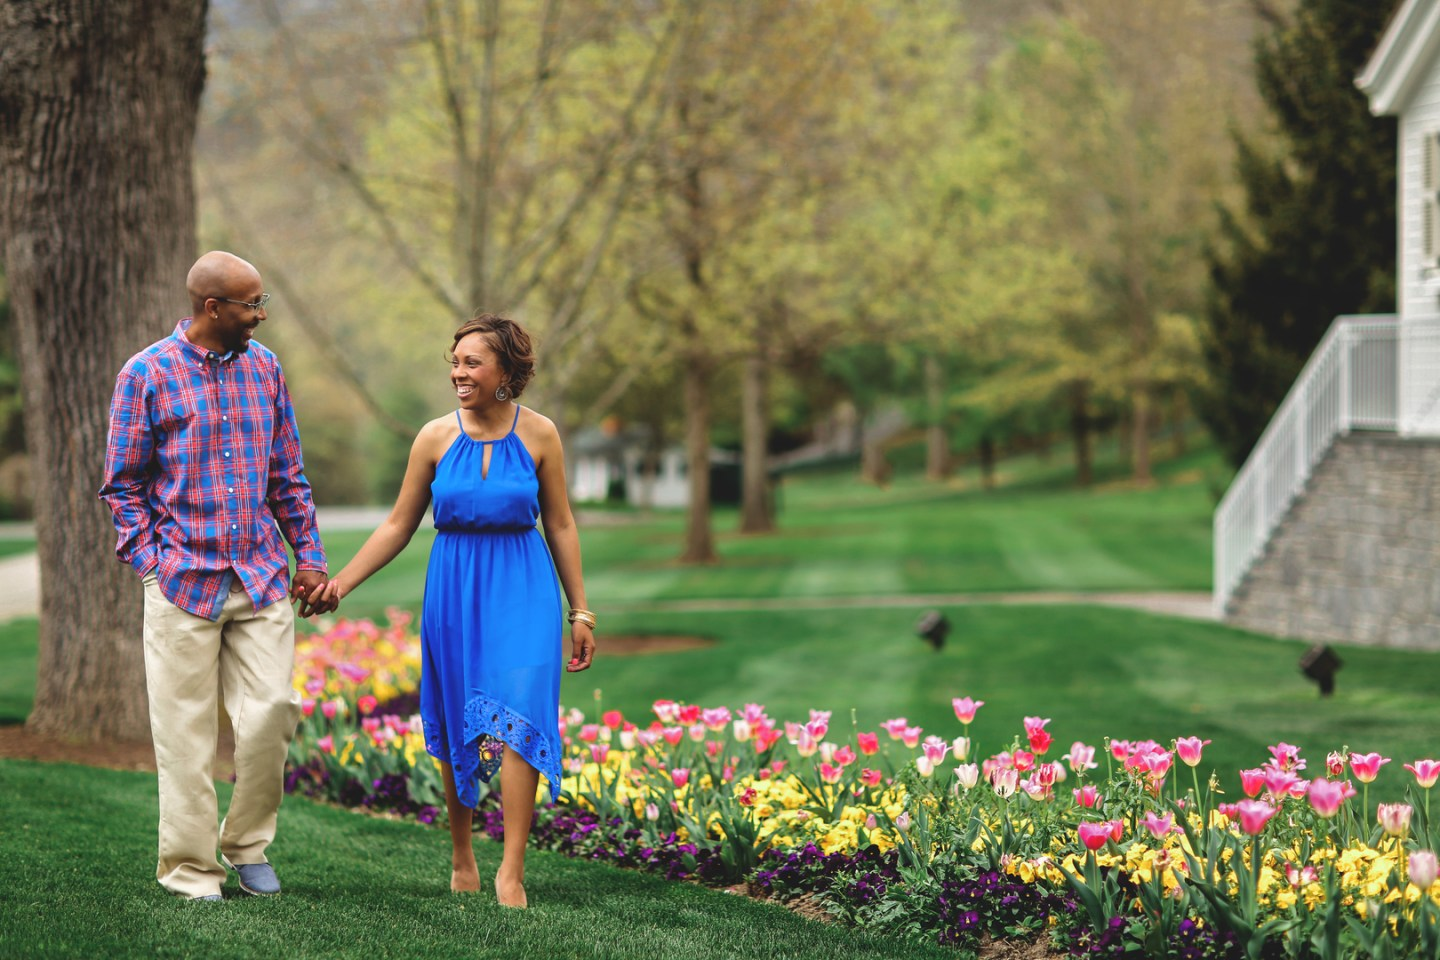 5gasi3ypqjwsdp0bs218_big West Virginia Engagement Session at the Greenbriar Resort